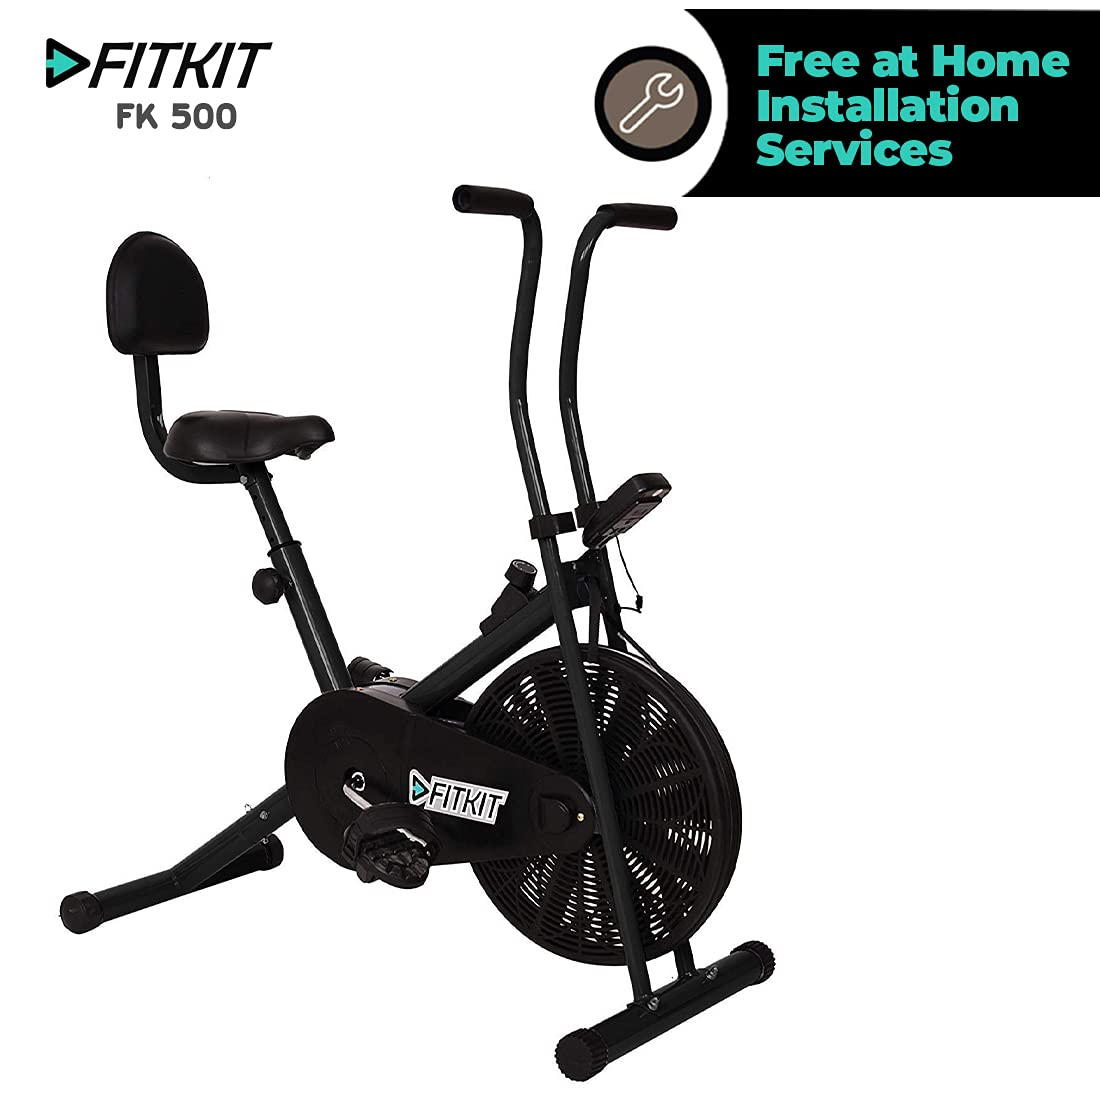 Fitkit FK 500 Steel Airbike Exercise Cycle